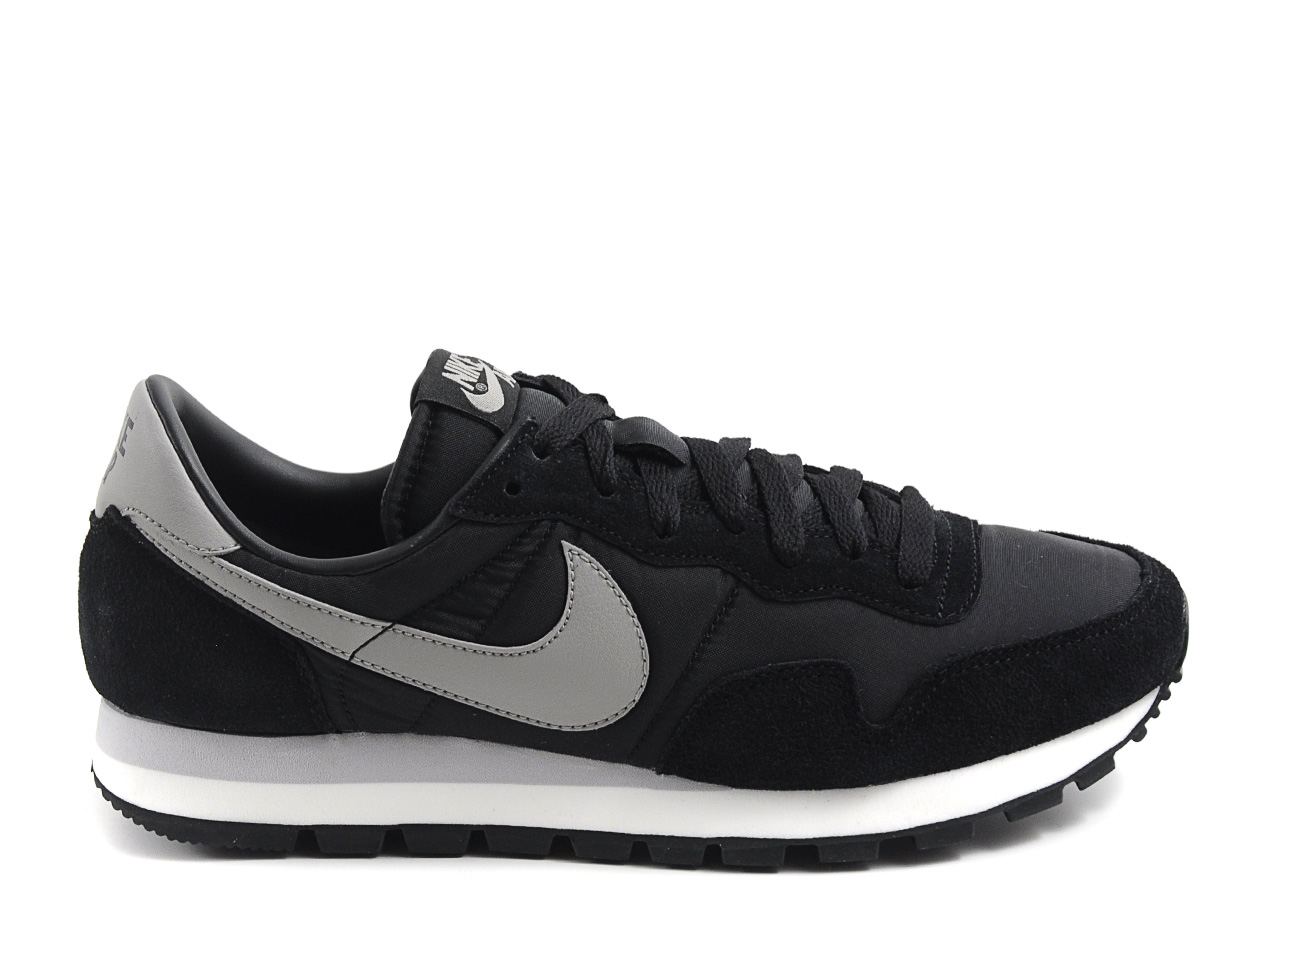 nike air pegasus 83 black in black for men lyst. Black Bedroom Furniture Sets. Home Design Ideas